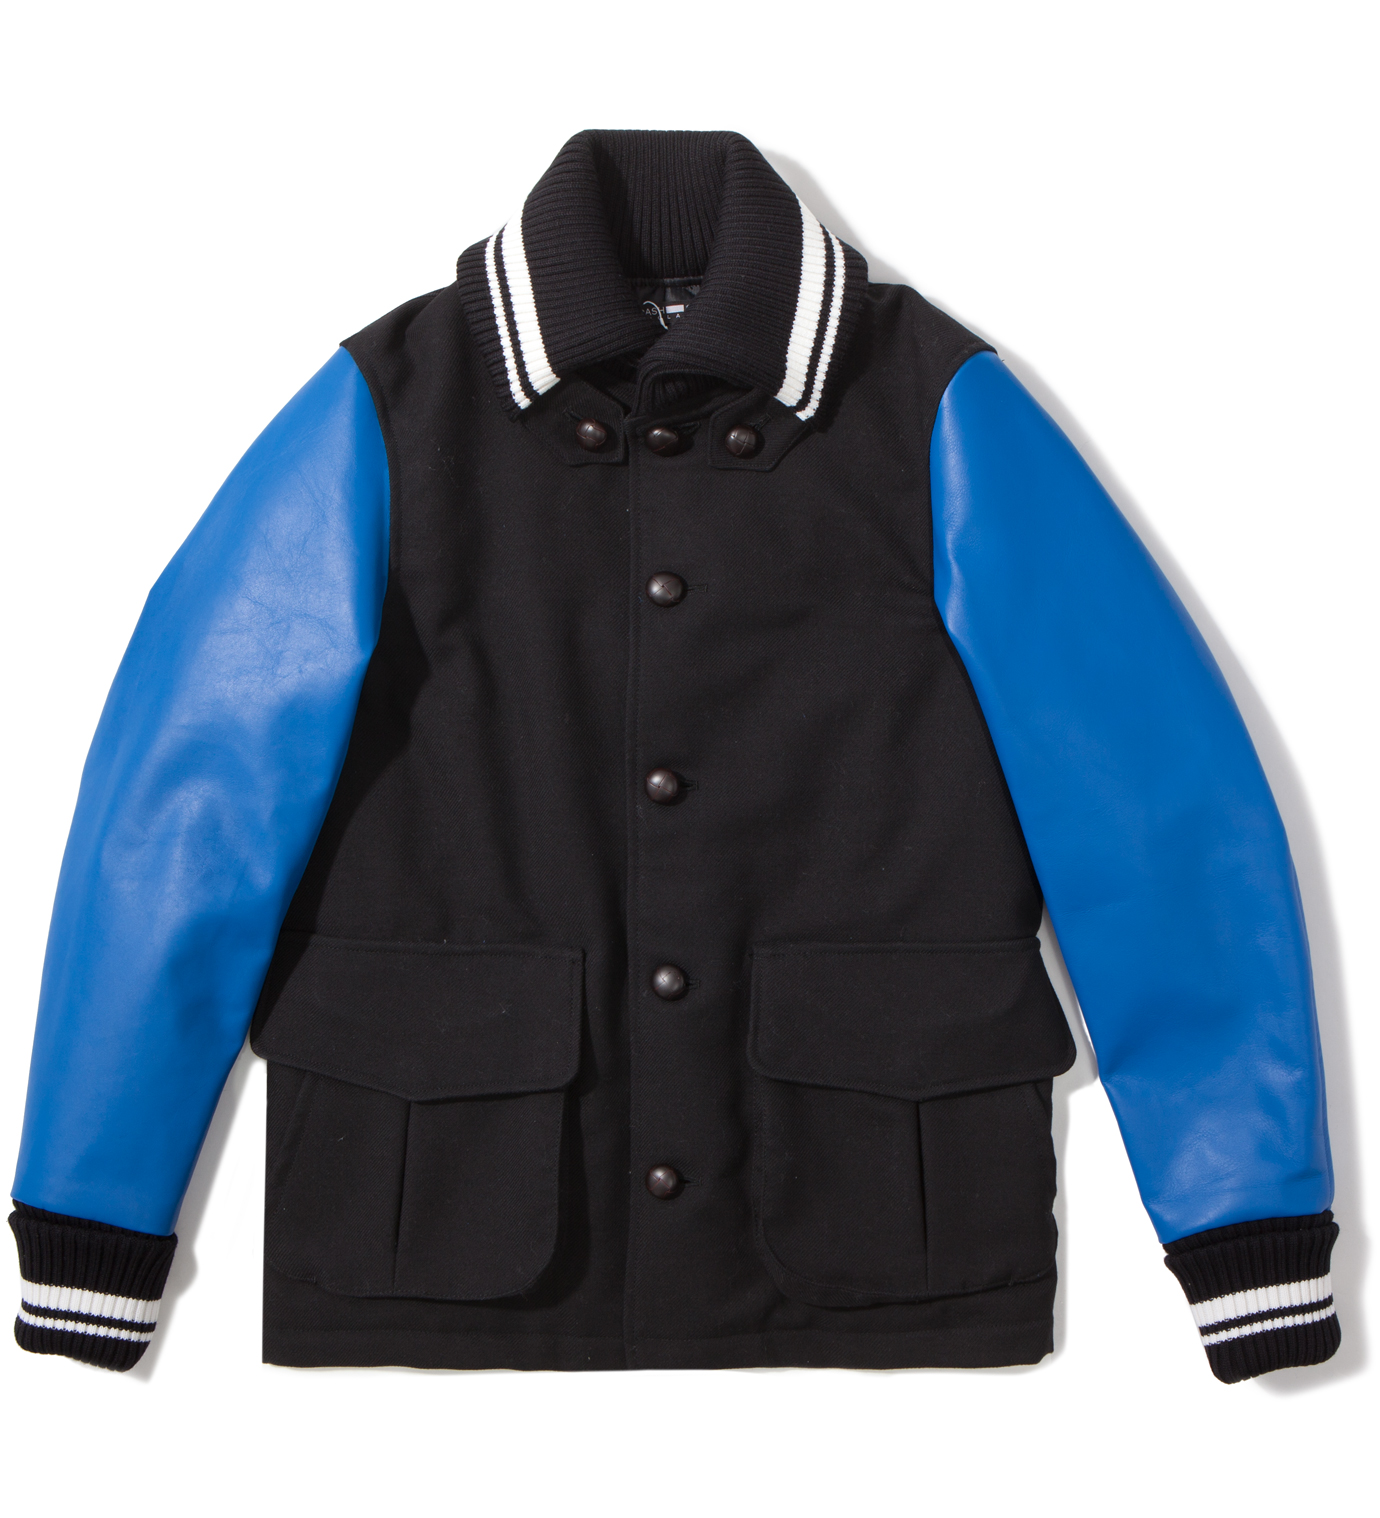 CASH CA Black Stadium Jacket